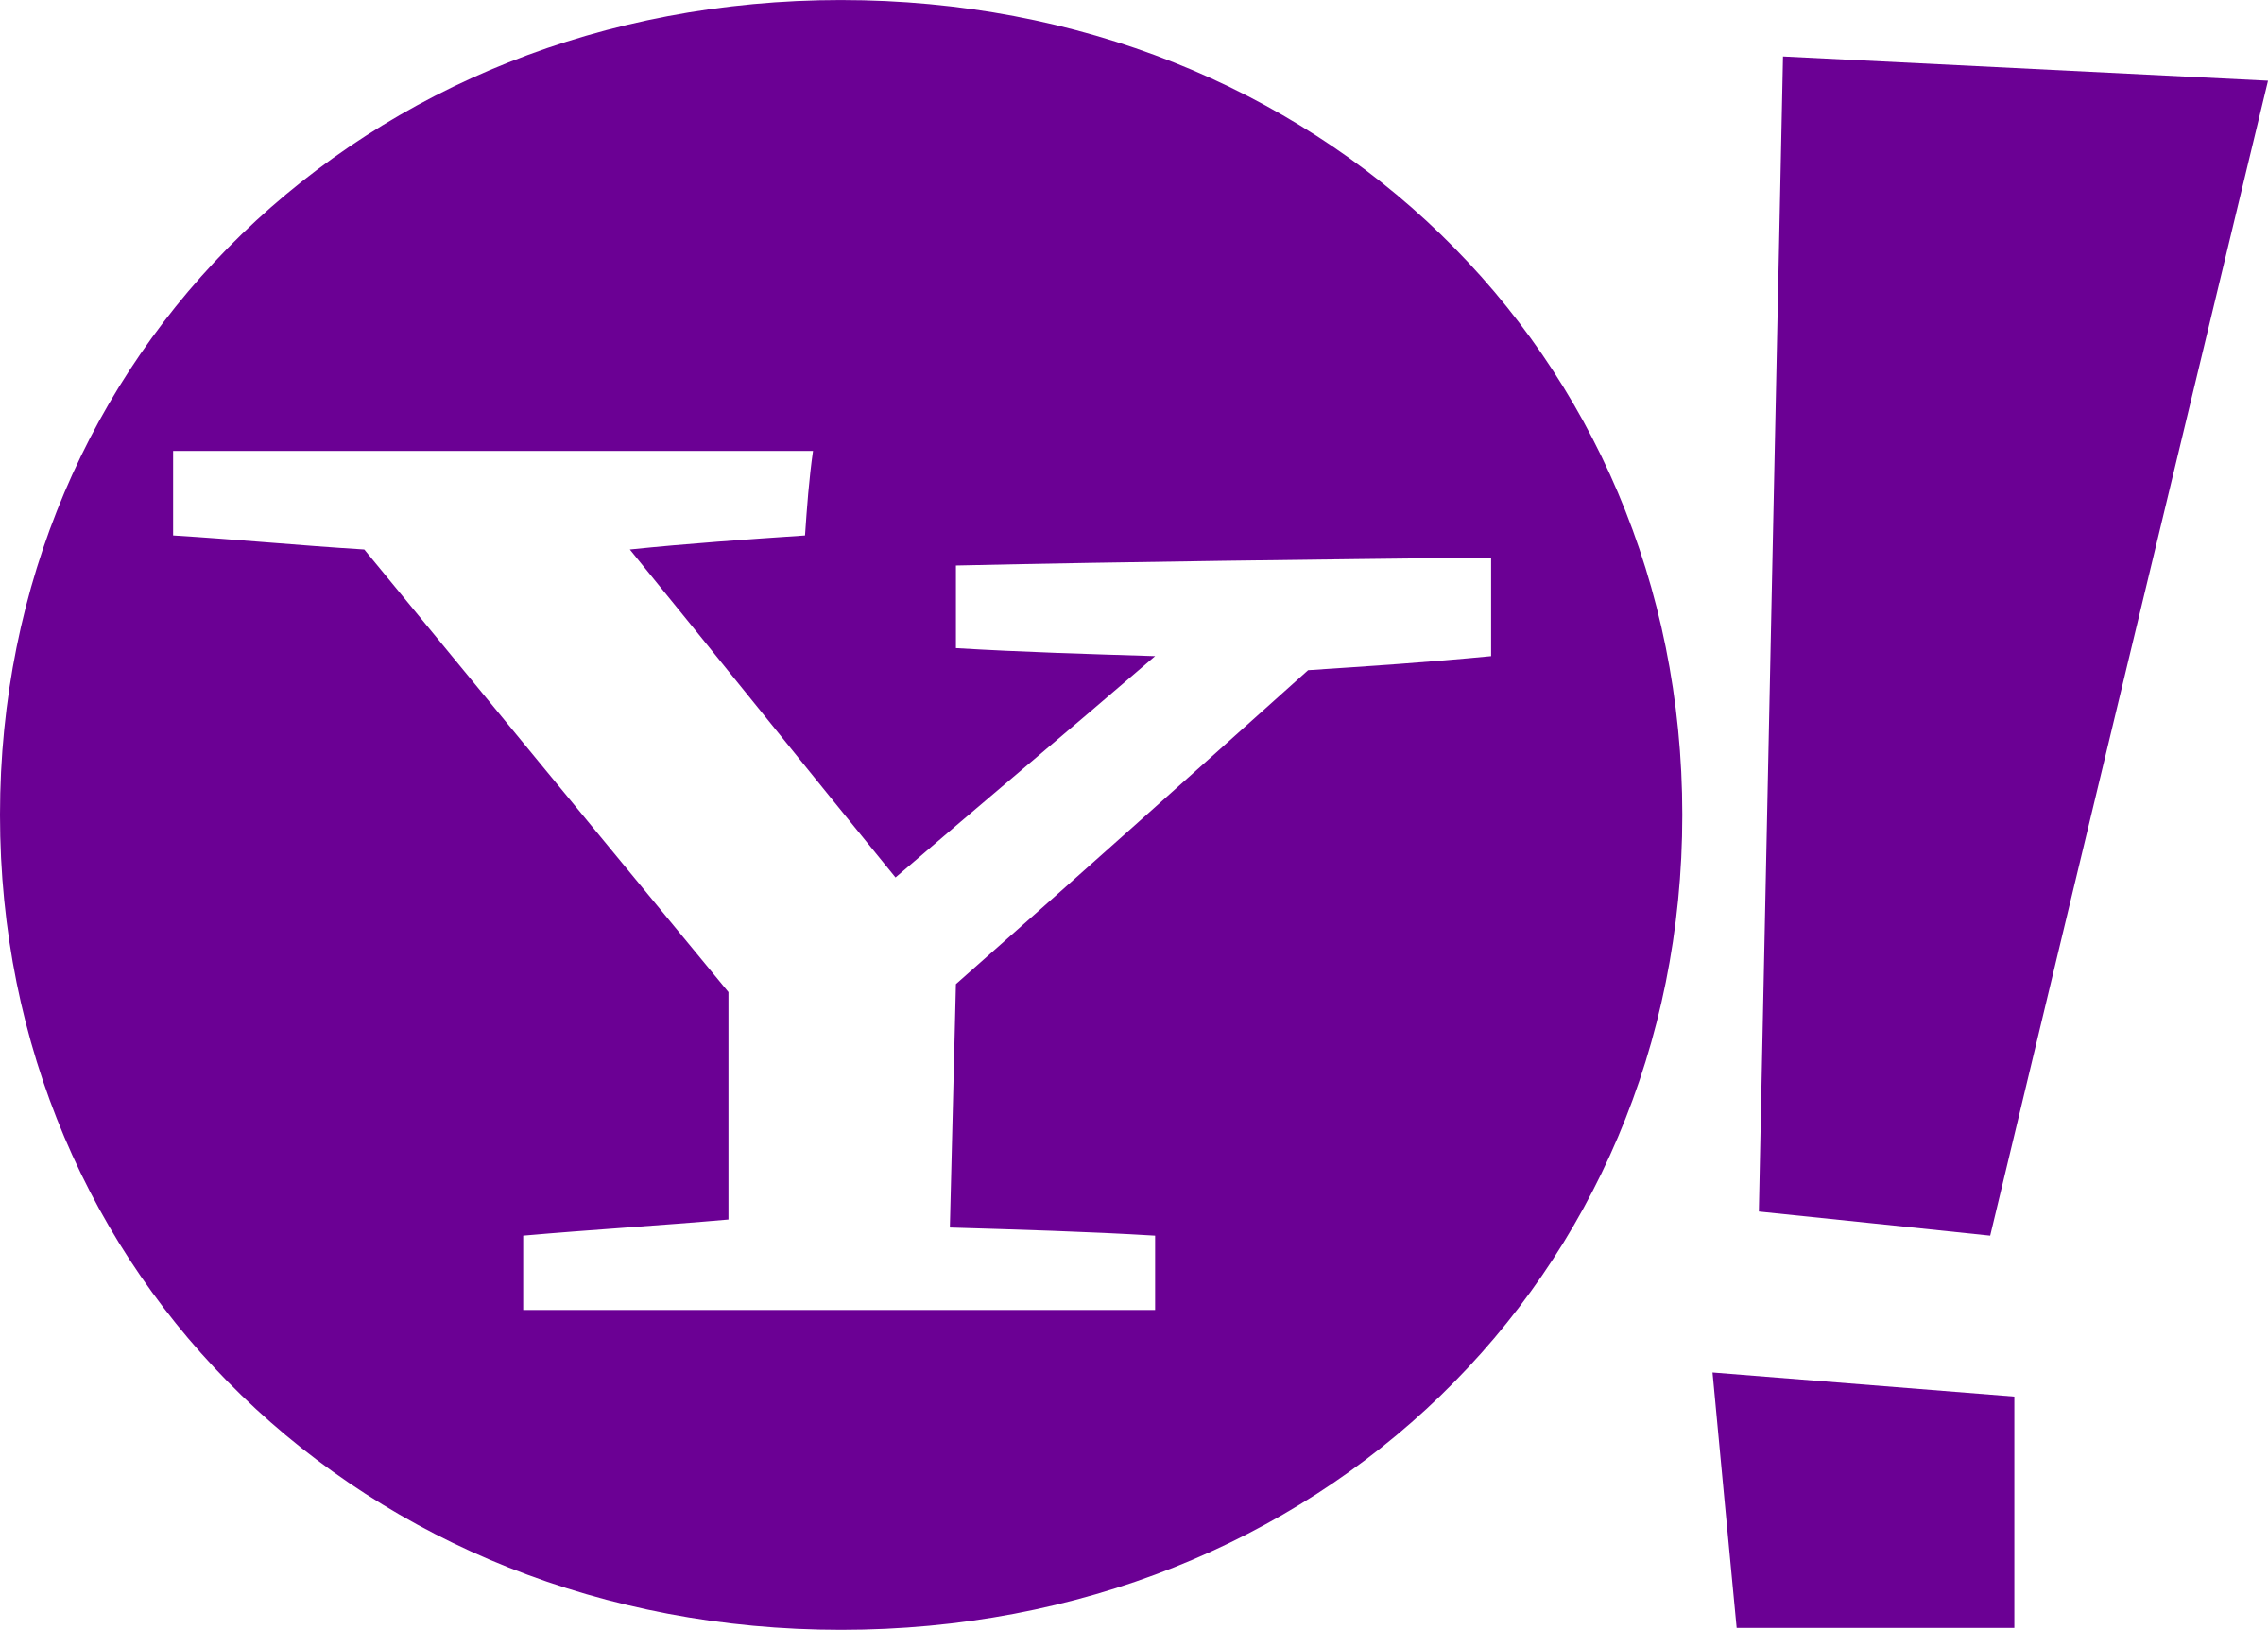 Yahoo! Icon Logo PNG Transparent & SVG Vector